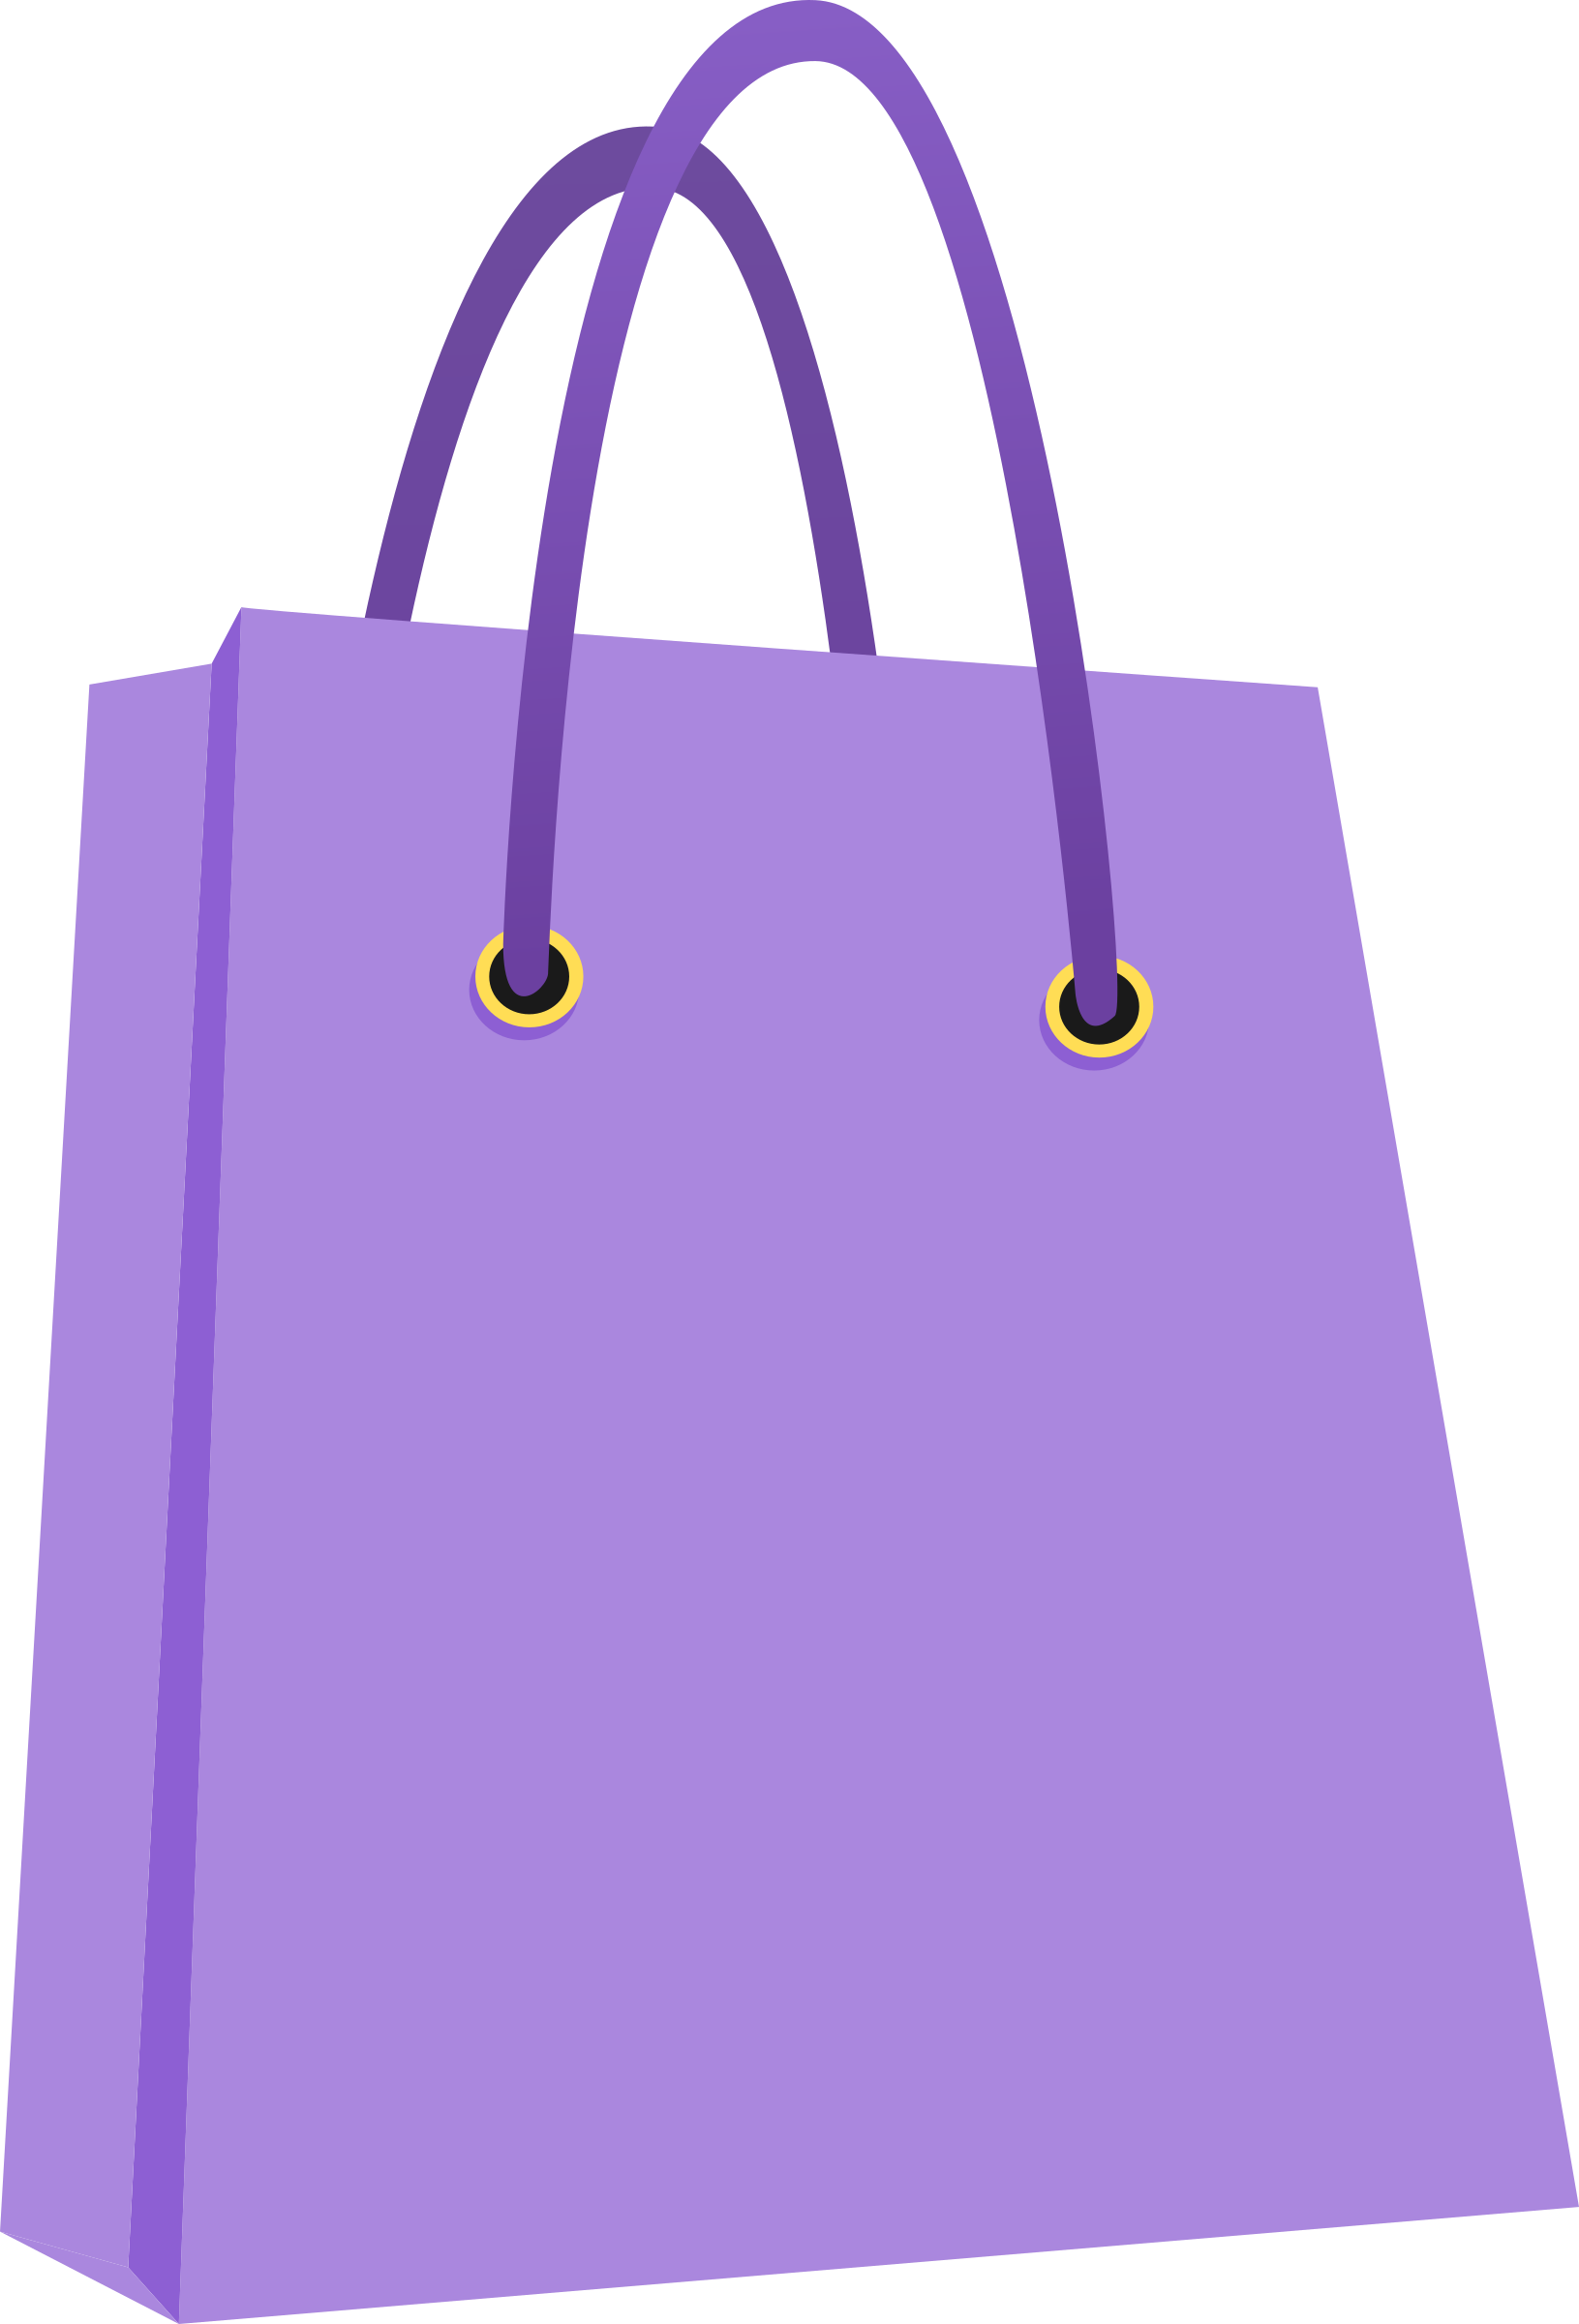 Patient clipart bag. Tote shopping bags trolleys